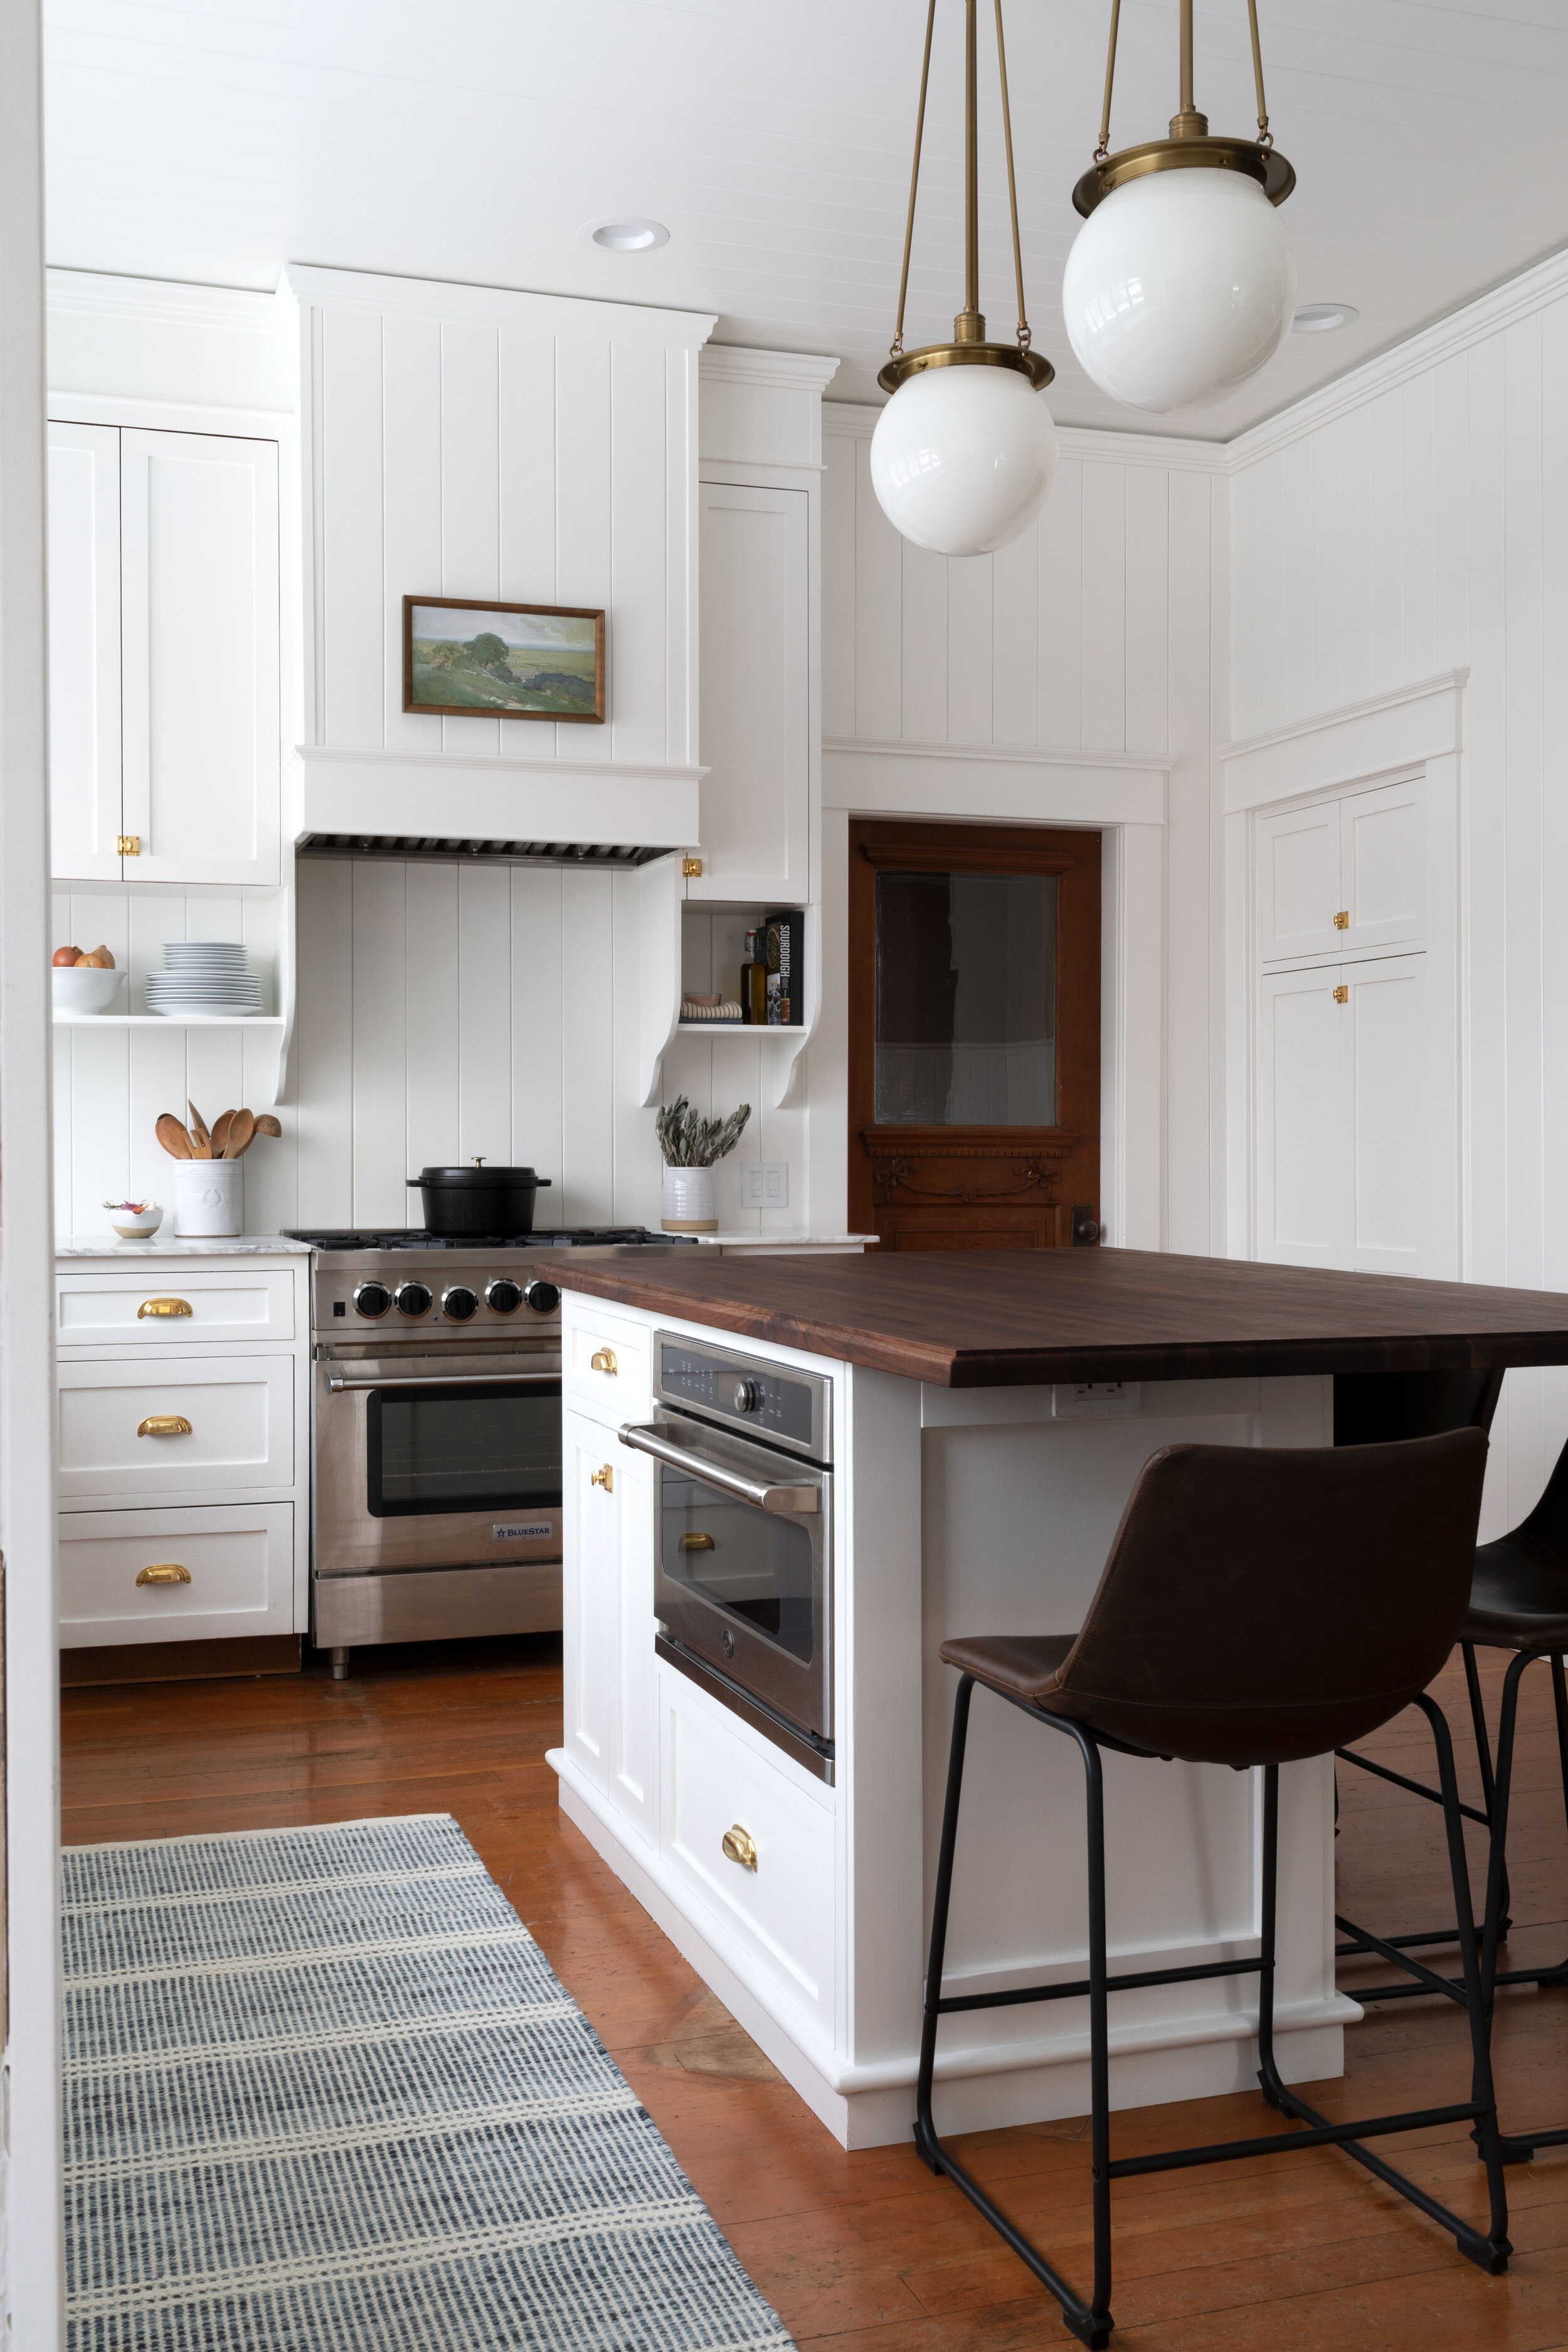 The Grit and Polish - Farmhouse Country Kitchen Reveal 3.0 11 web.jpg